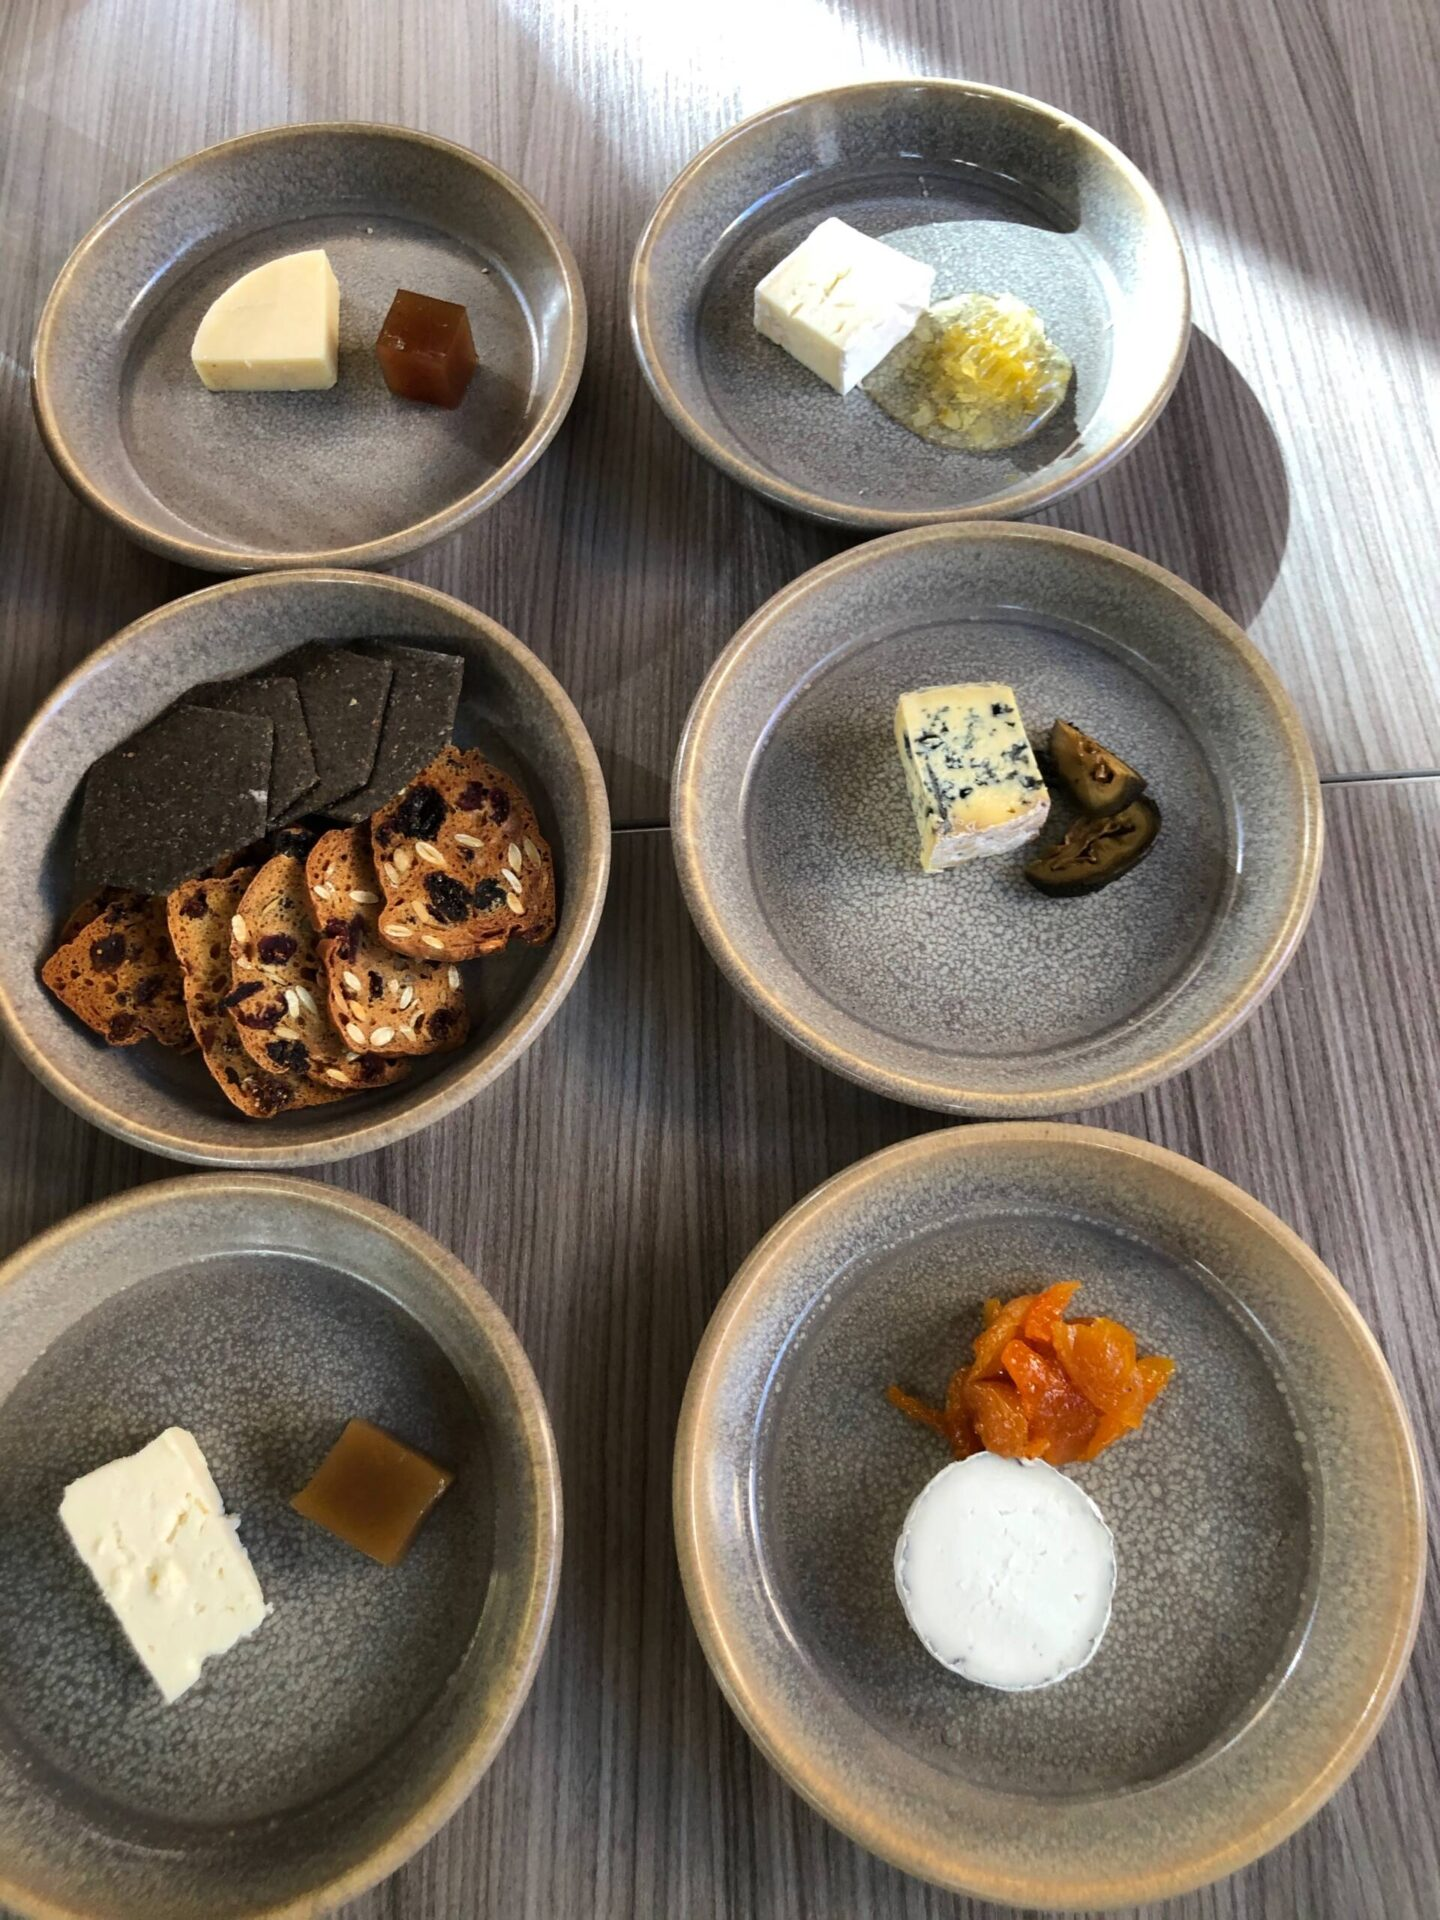 Craft Dining Birmingham cheese courses 6 dishes